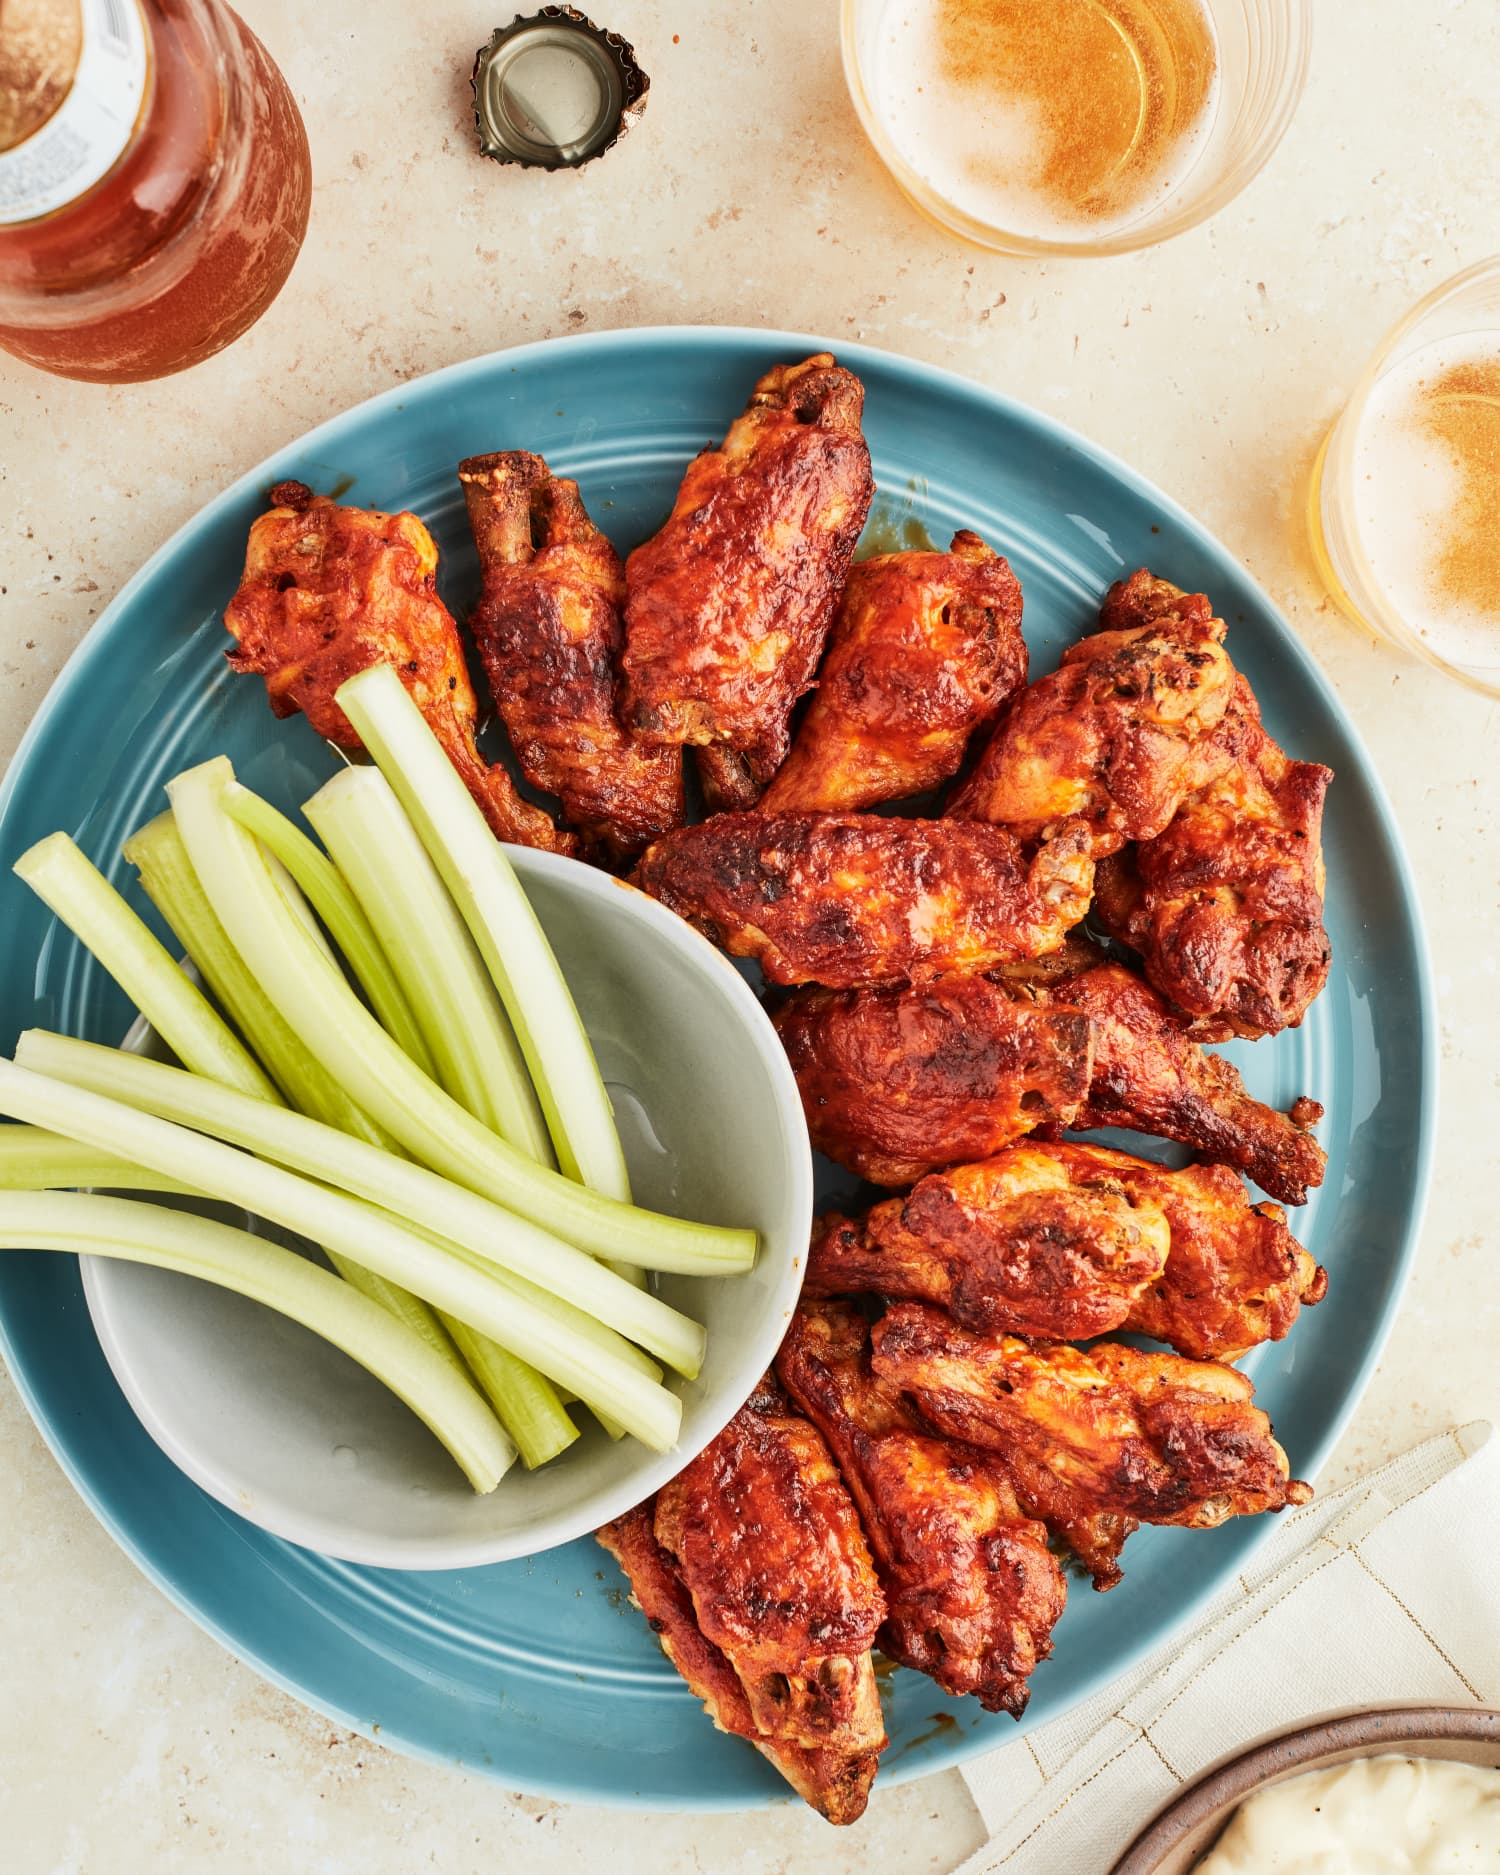 Instant Pot Chicken Wings Are Fall-off-the-Bone-Tender